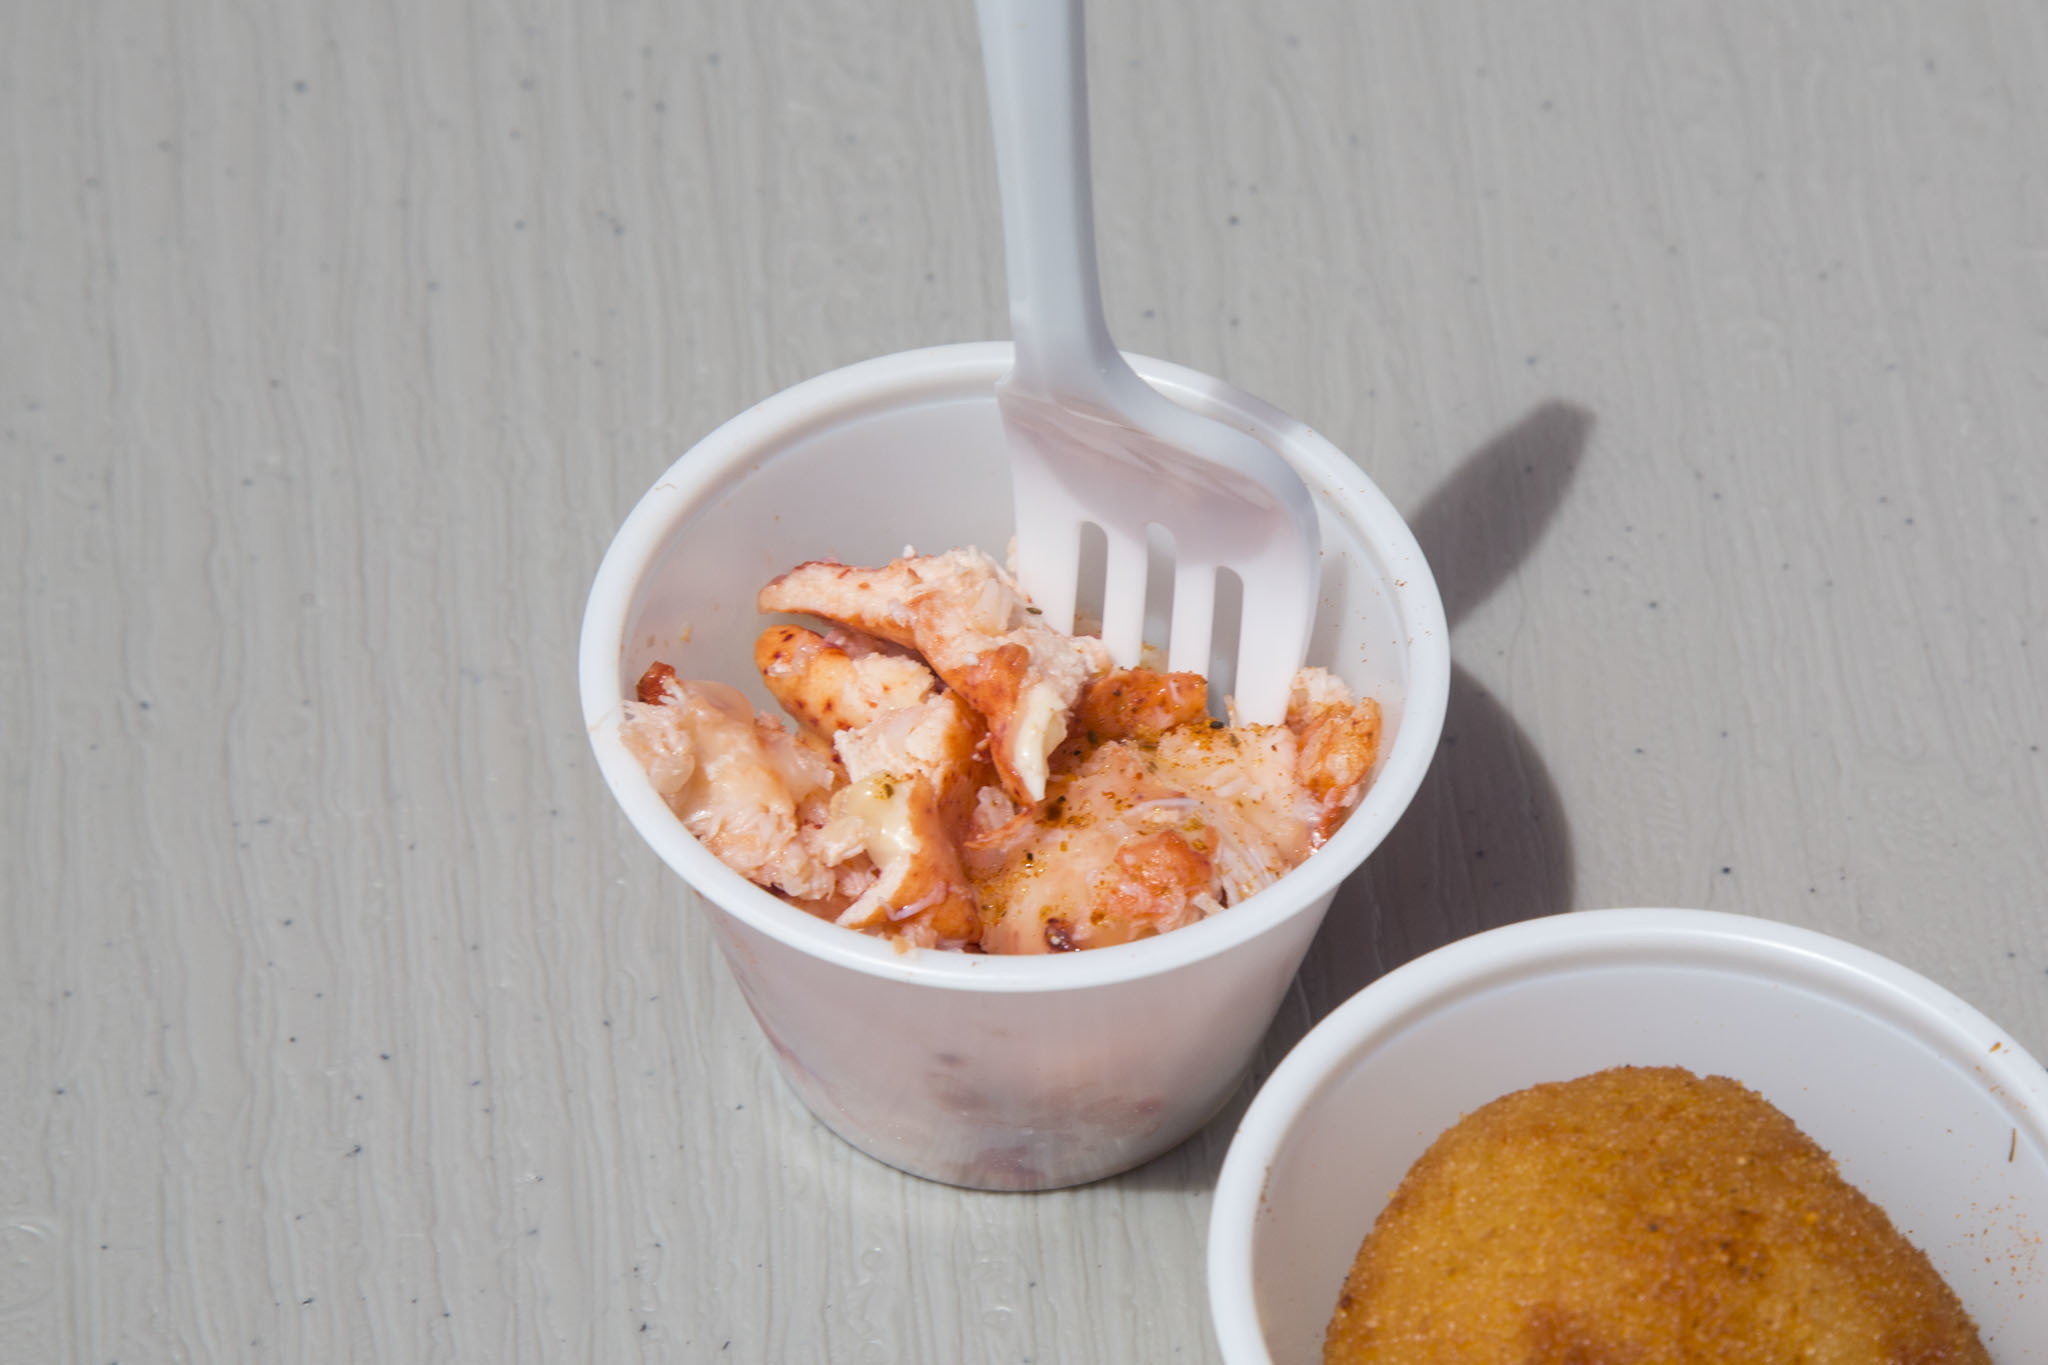 Taste of Happy Lobster from the Happy Lobster Truck